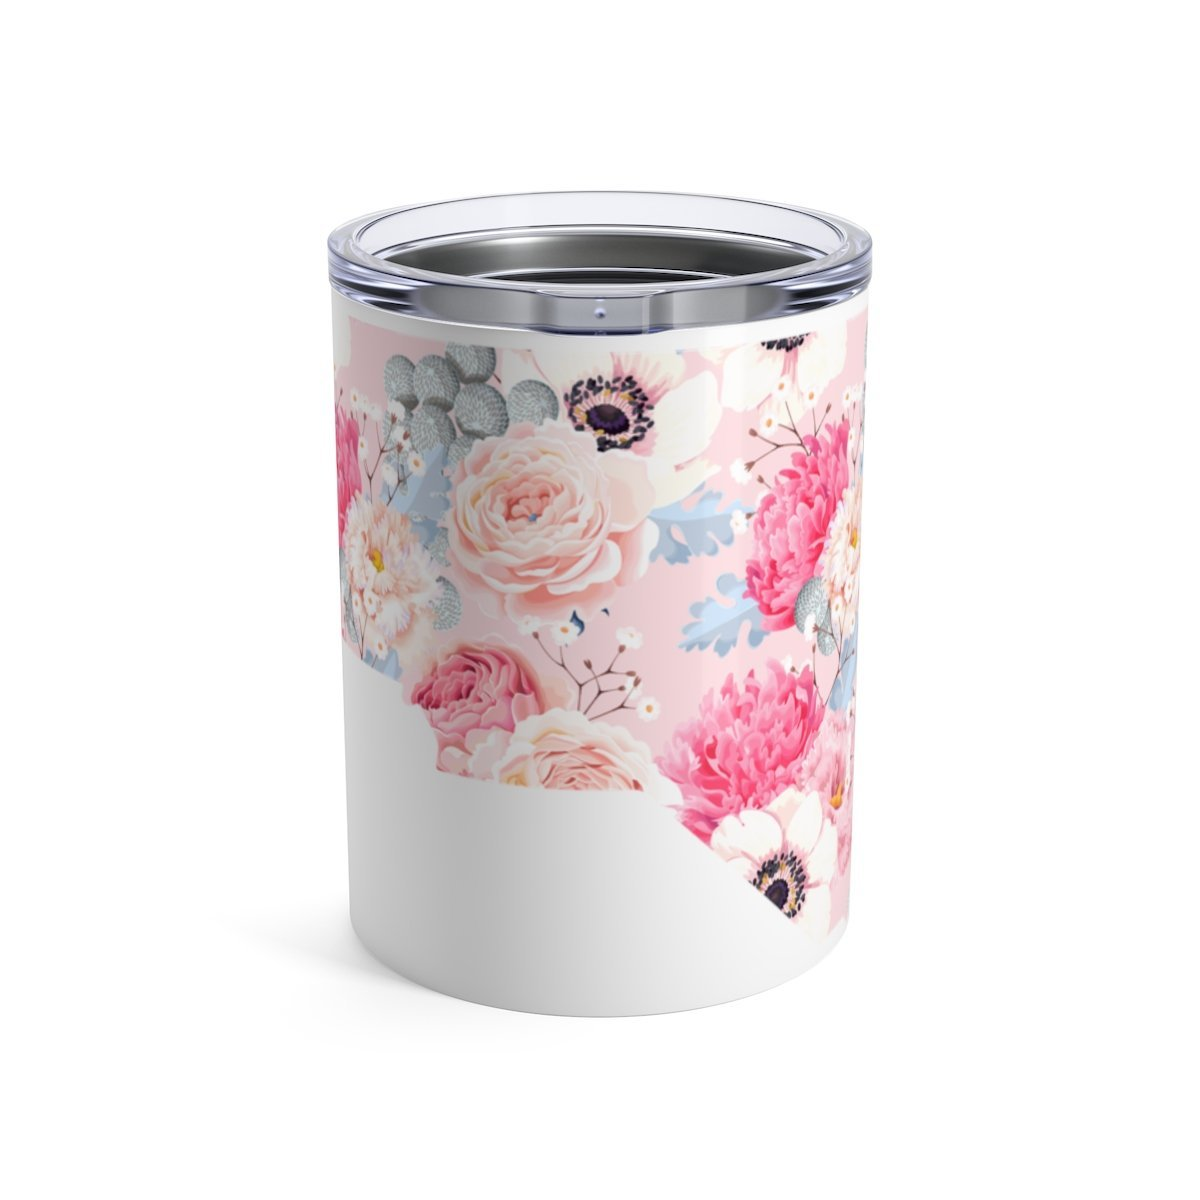 Leanne & Co. Mug 10oz North Carolina Peonies 10oz Tumbler